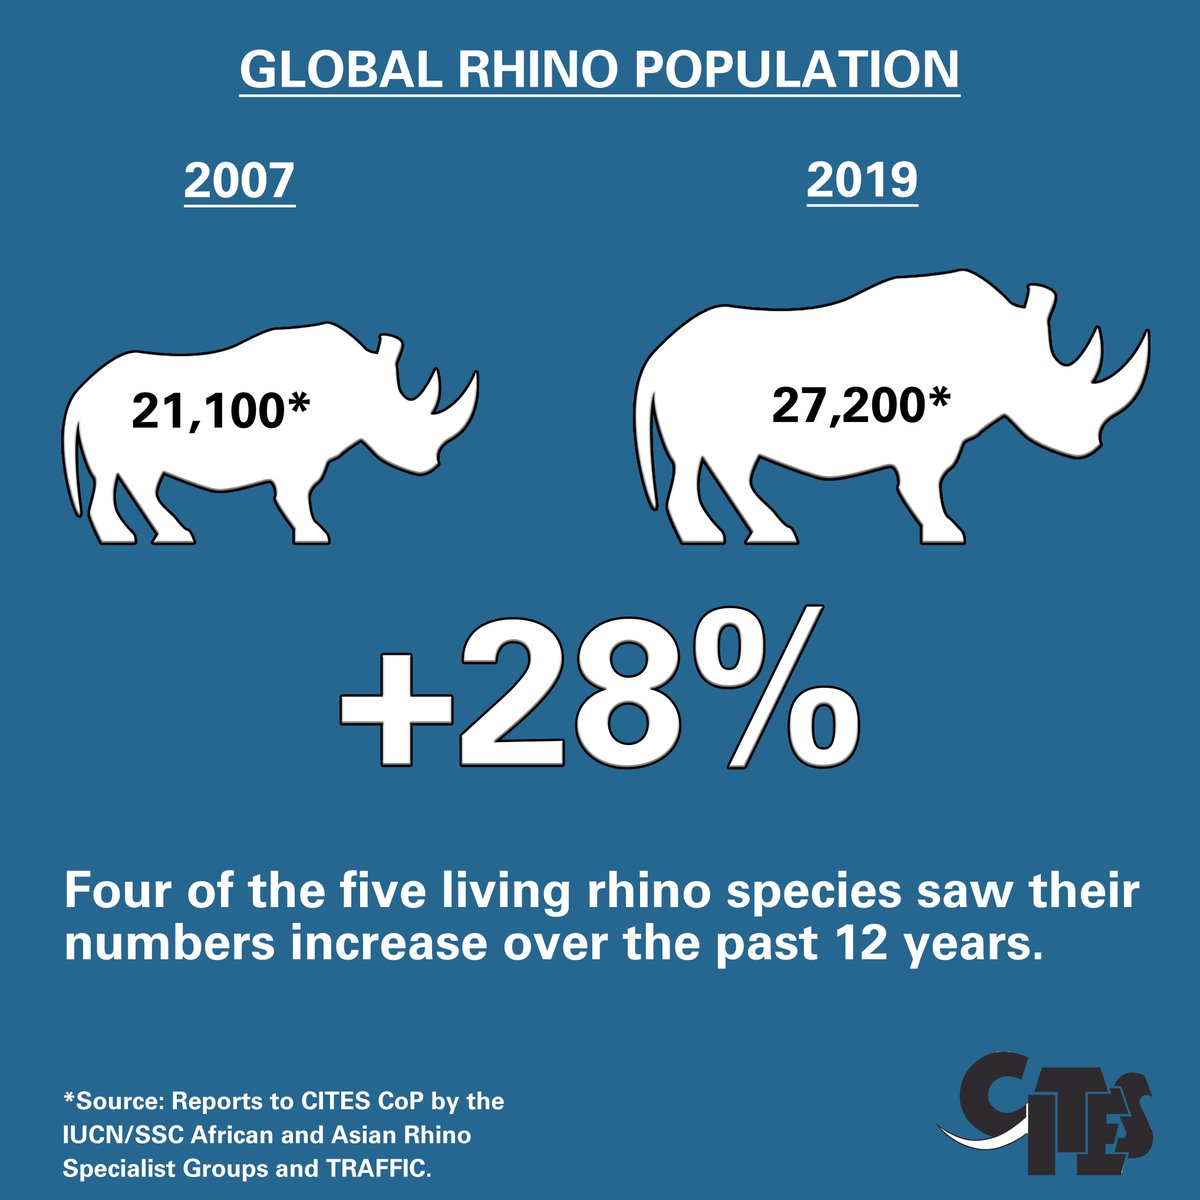 Proactive @CITES implementation, good management & enforcement practices by Parties like South Africa & CITES programmes like MIKE & NIRAPs have reduced poaching levels & allowed 4 of 5 rhino populations to increase over last 12 yrs bit.ly/2Oy95jz #Wildlife #Conservation